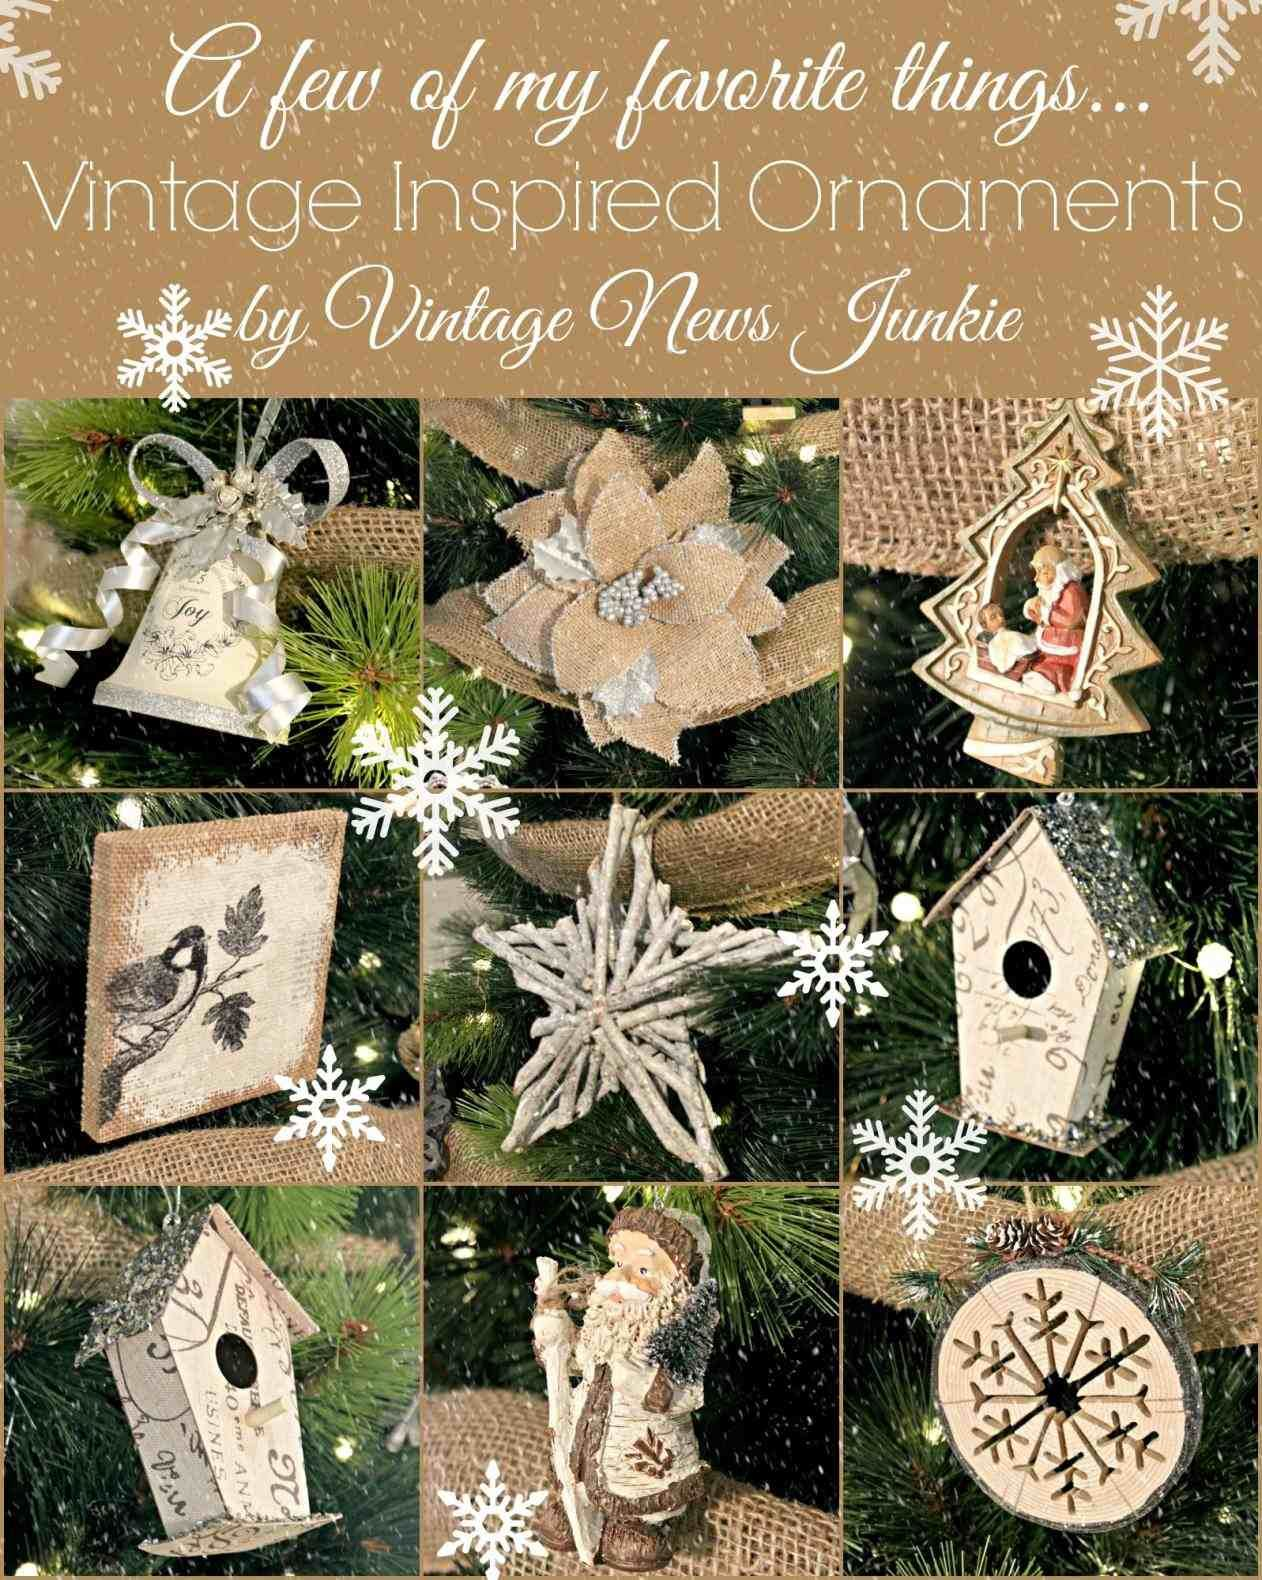 New post country christmas crafts to make and sell decors ideas